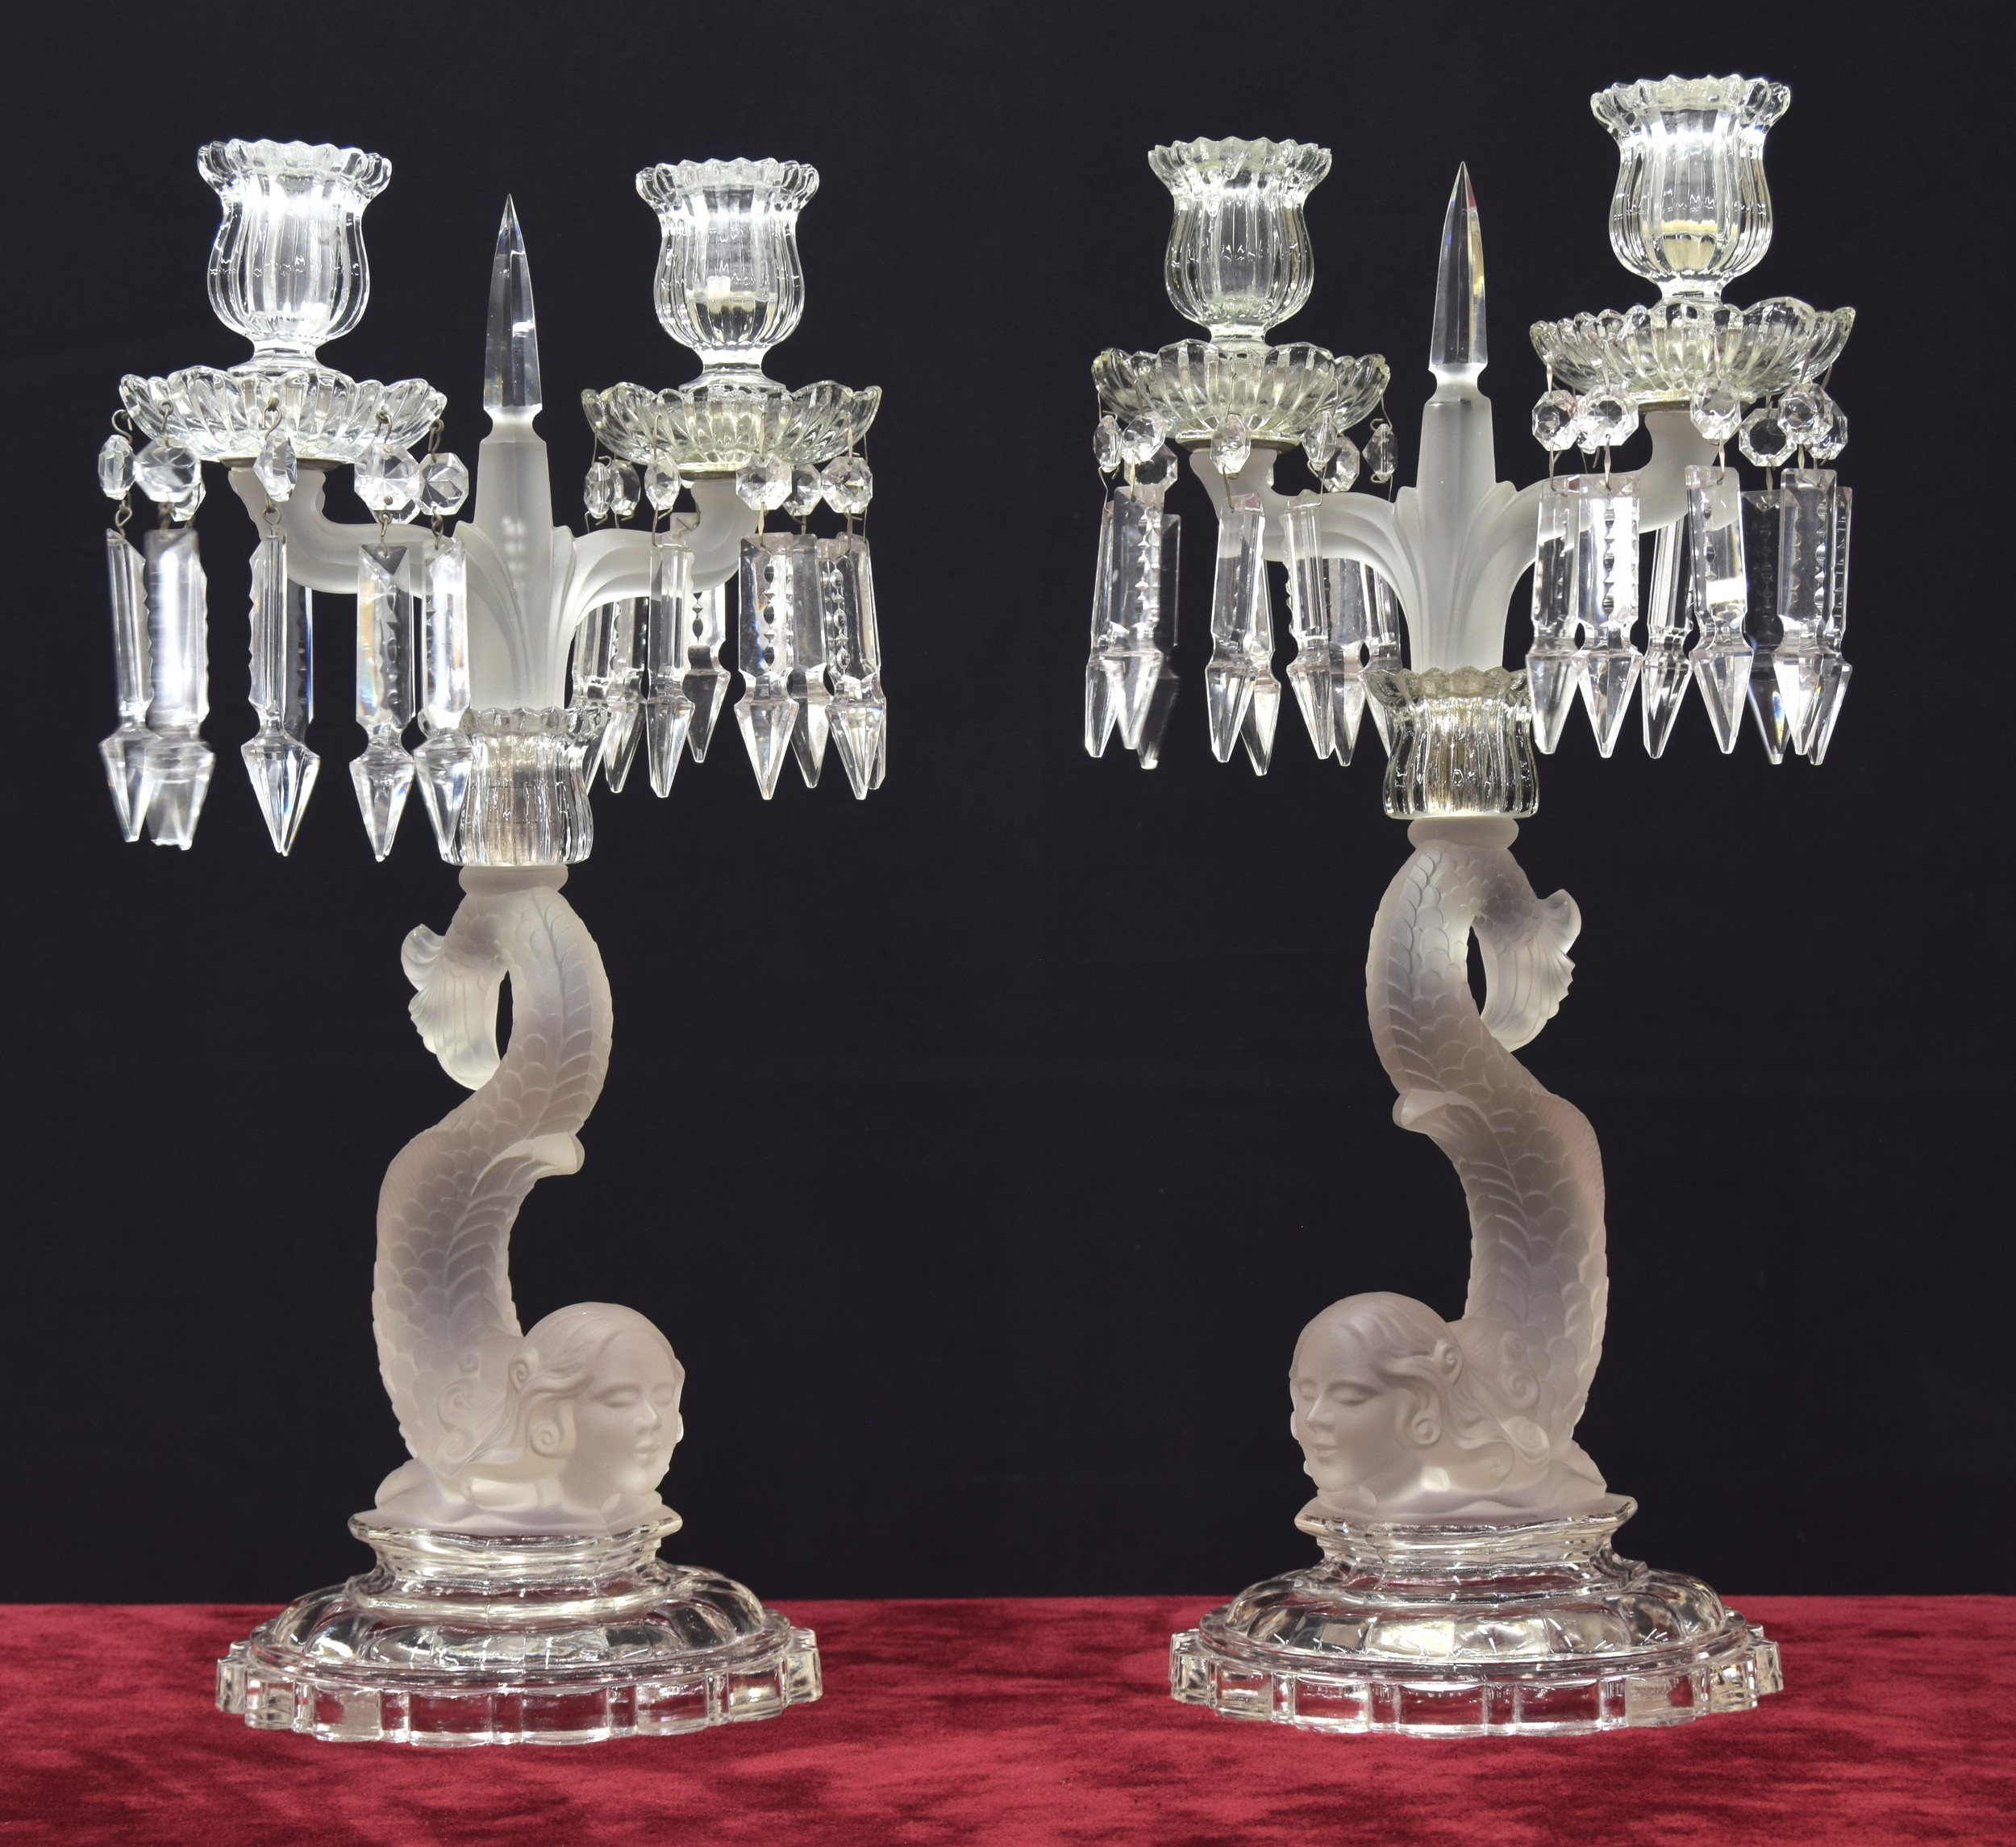 Pair of Baccarat twin-sconce glass candlesticks,the drip-pans with pendant lustre drops upon